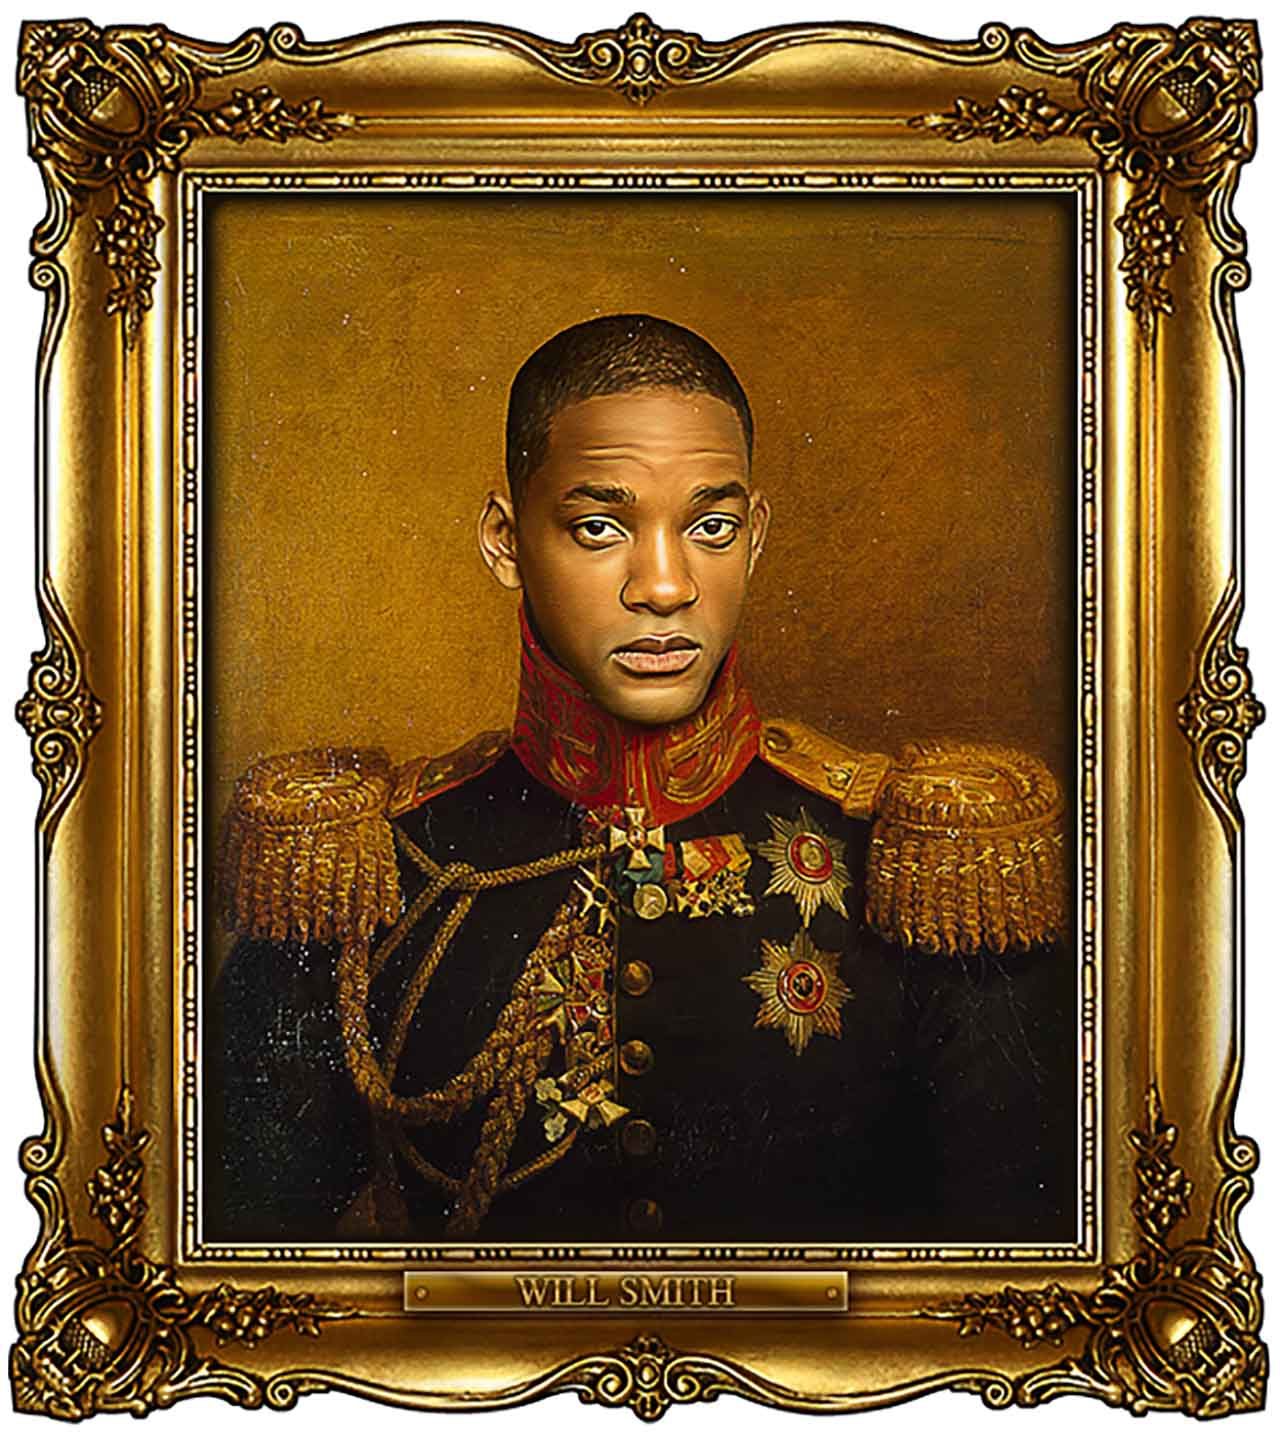 Artist Turns Famous Actors Into Russian Generals - Will Smith